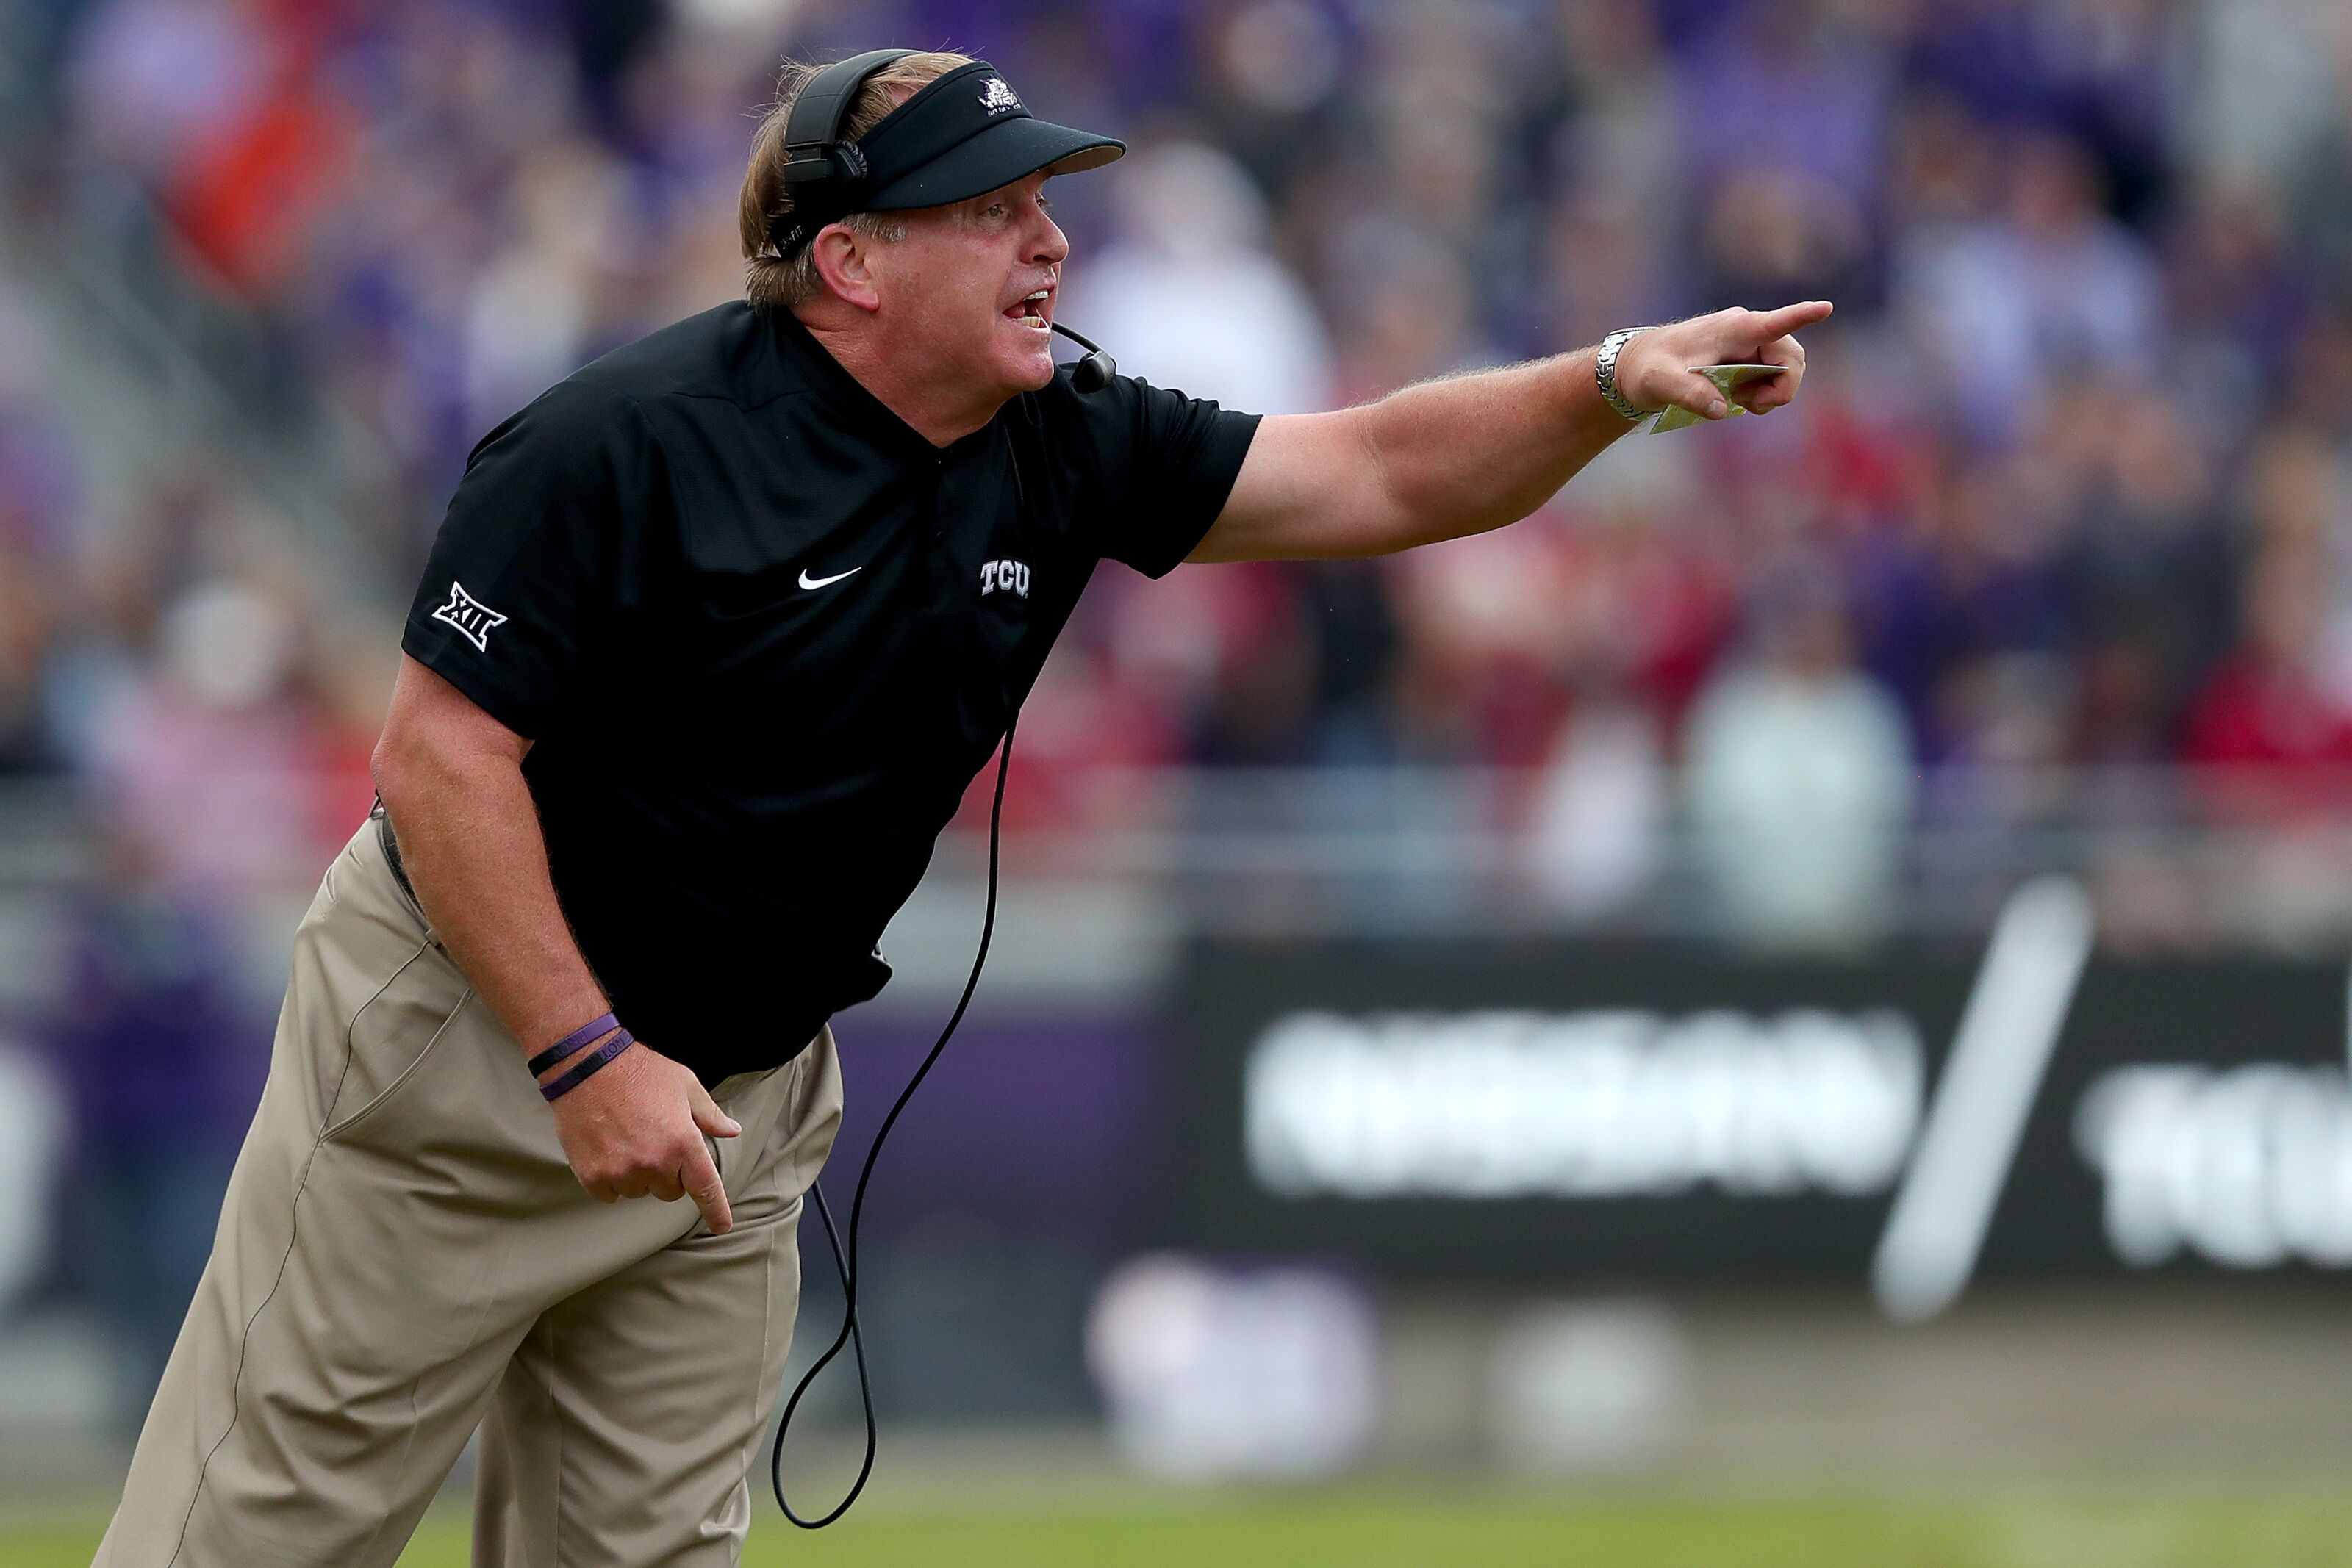 Tennessee football: Vols rejecting Gary Patterson another lesson on incompetence